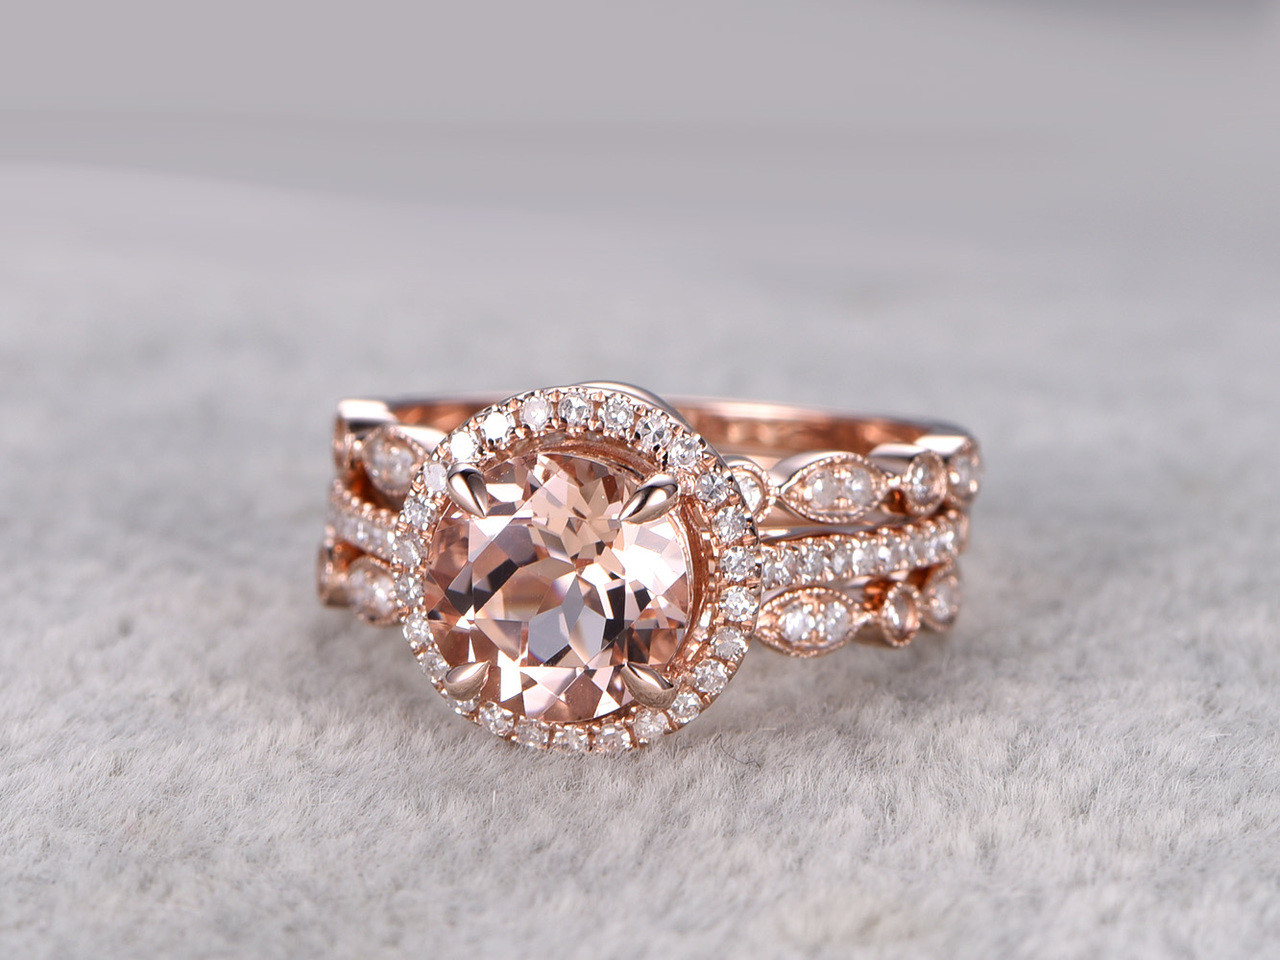 Merveilleux 3pcs Round Morganite Wedding Set Curved Diamond Bridal Ring 14k Rose Gold  Halo Art Deco Antique